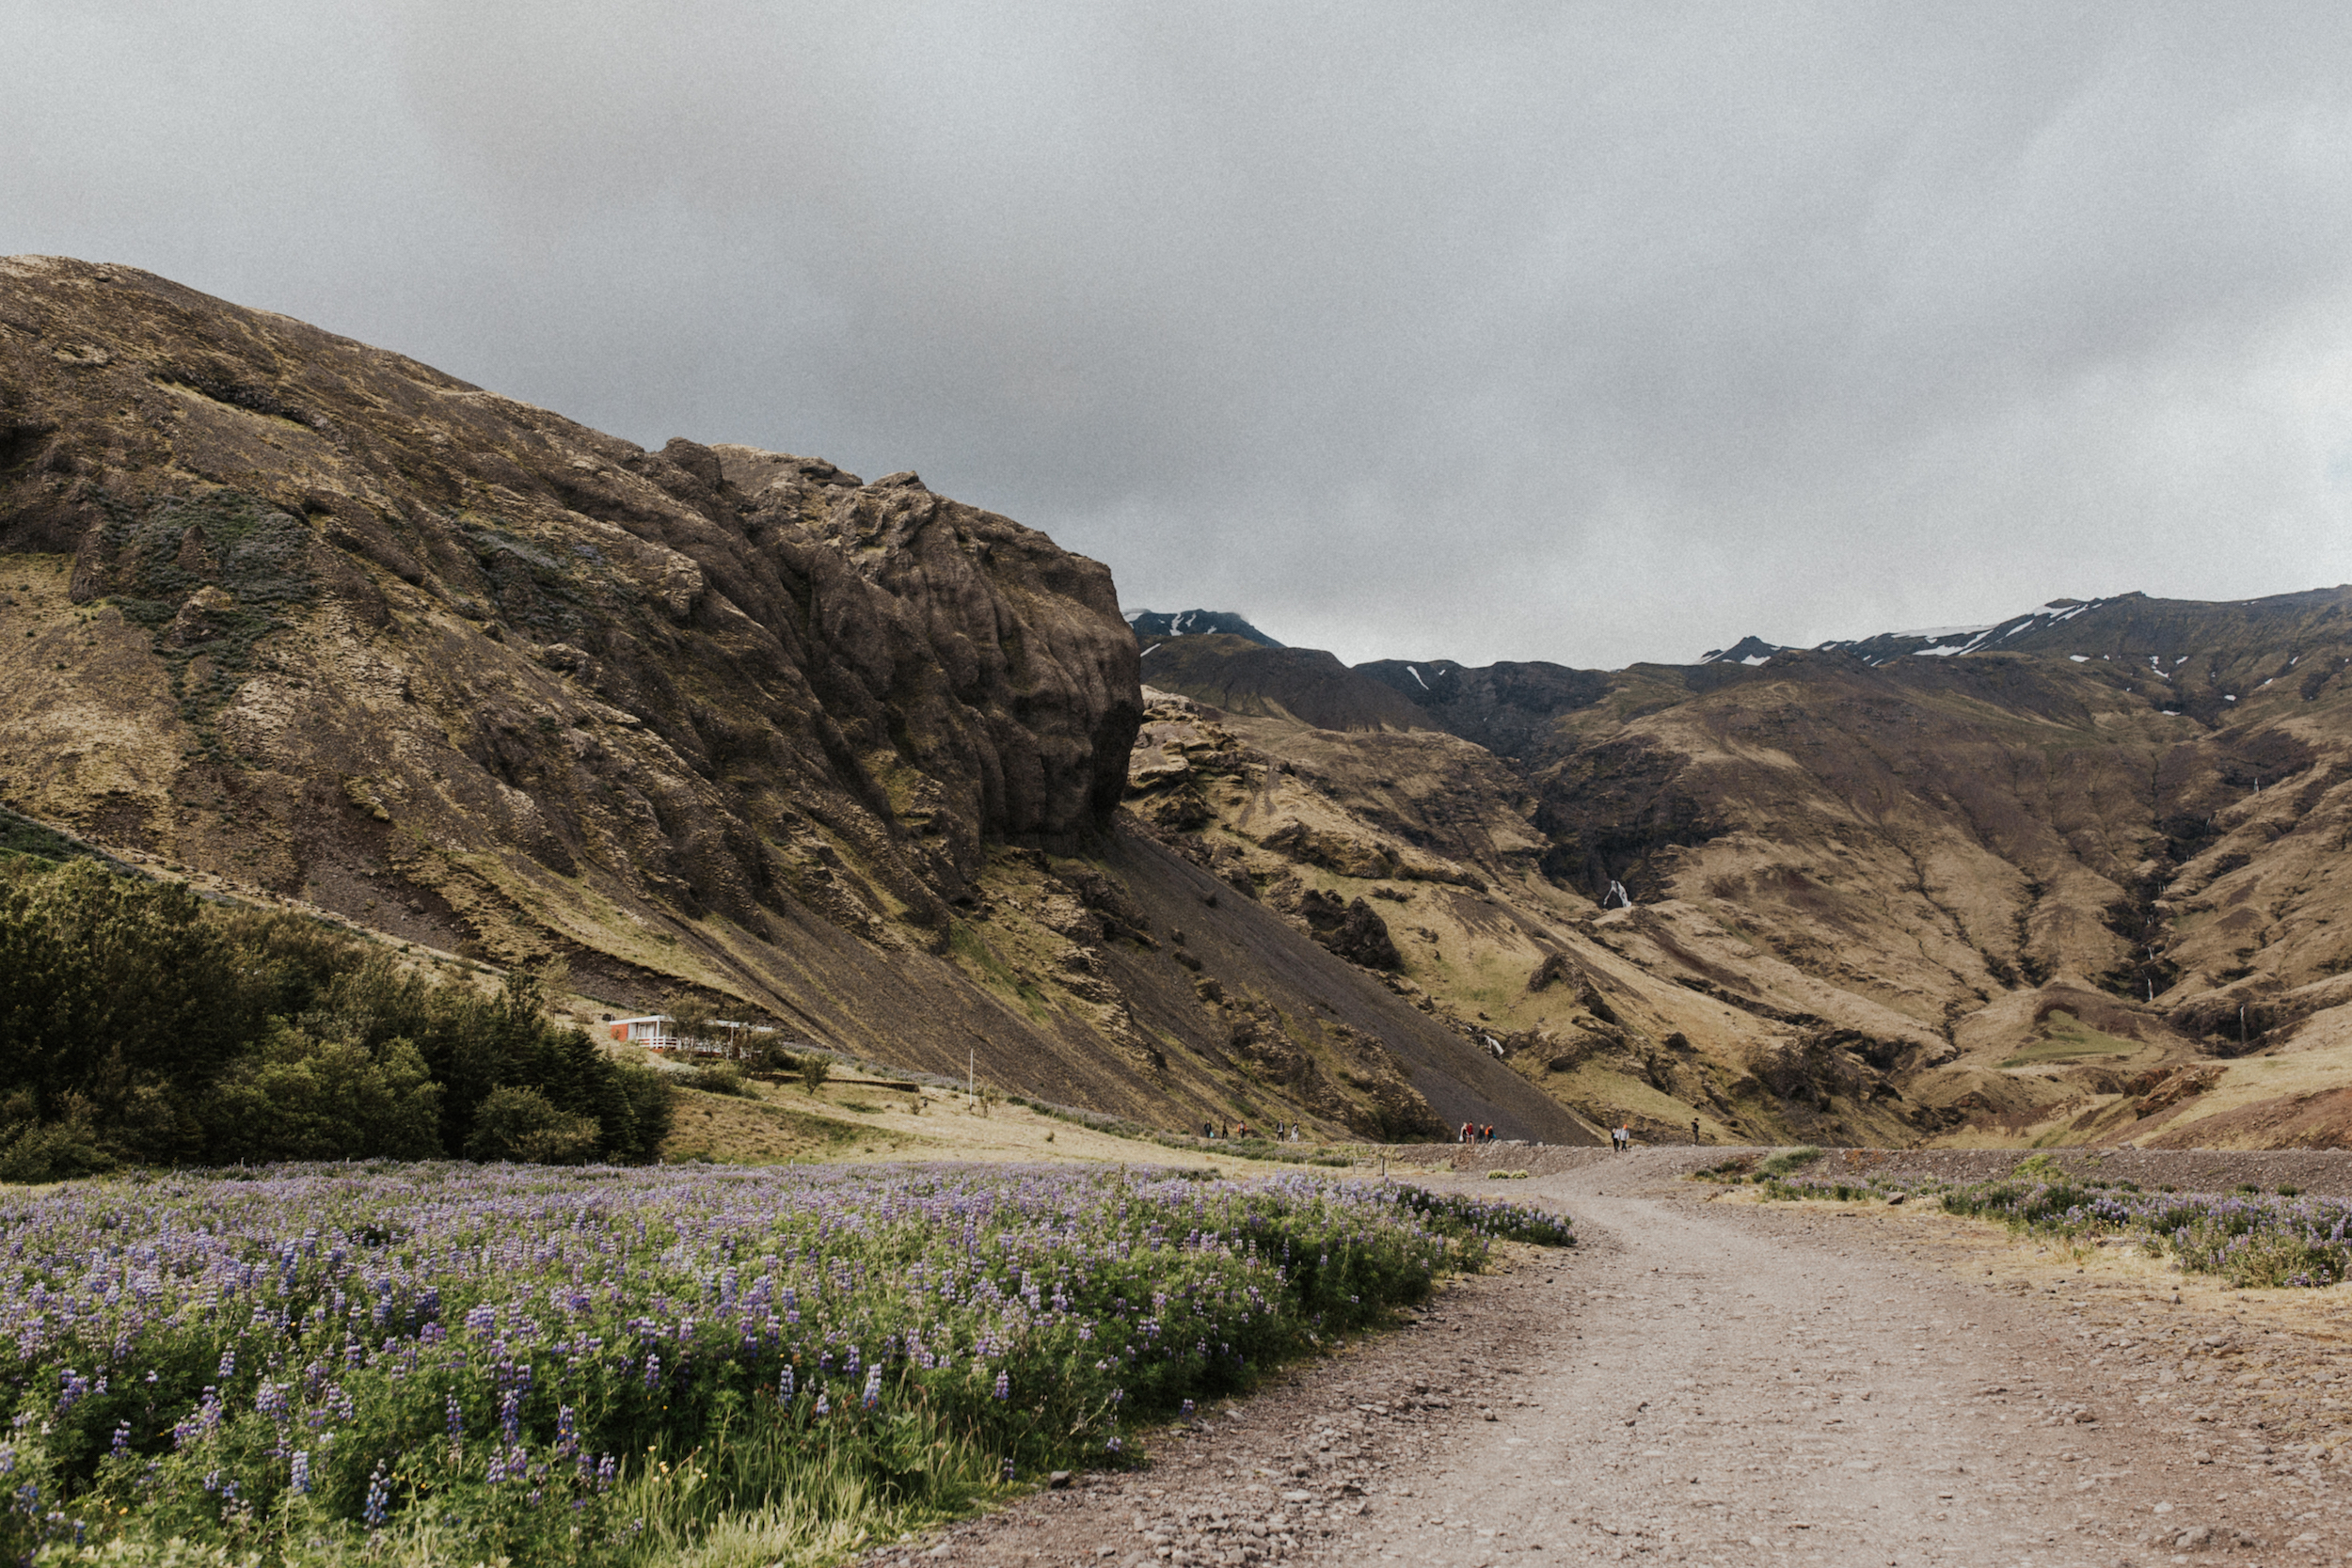 Icelandic landscape with wildflowers.jpg